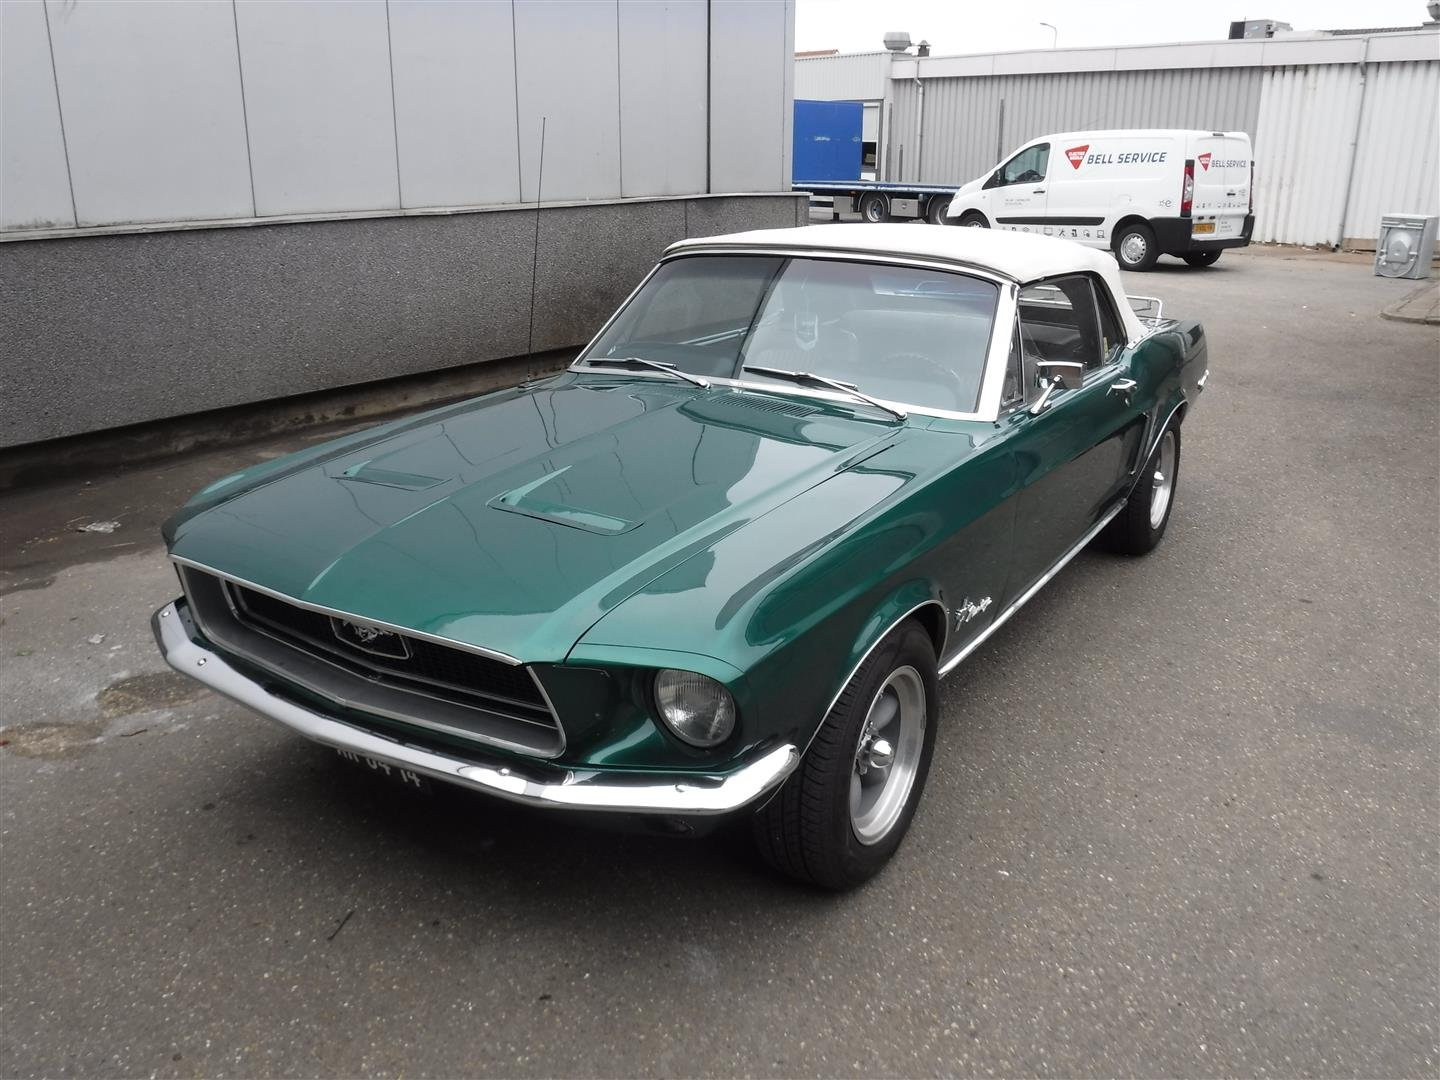 1968 Ford Mustang '68 convertible (beauty!!) For Sale (picture 1 of 6)